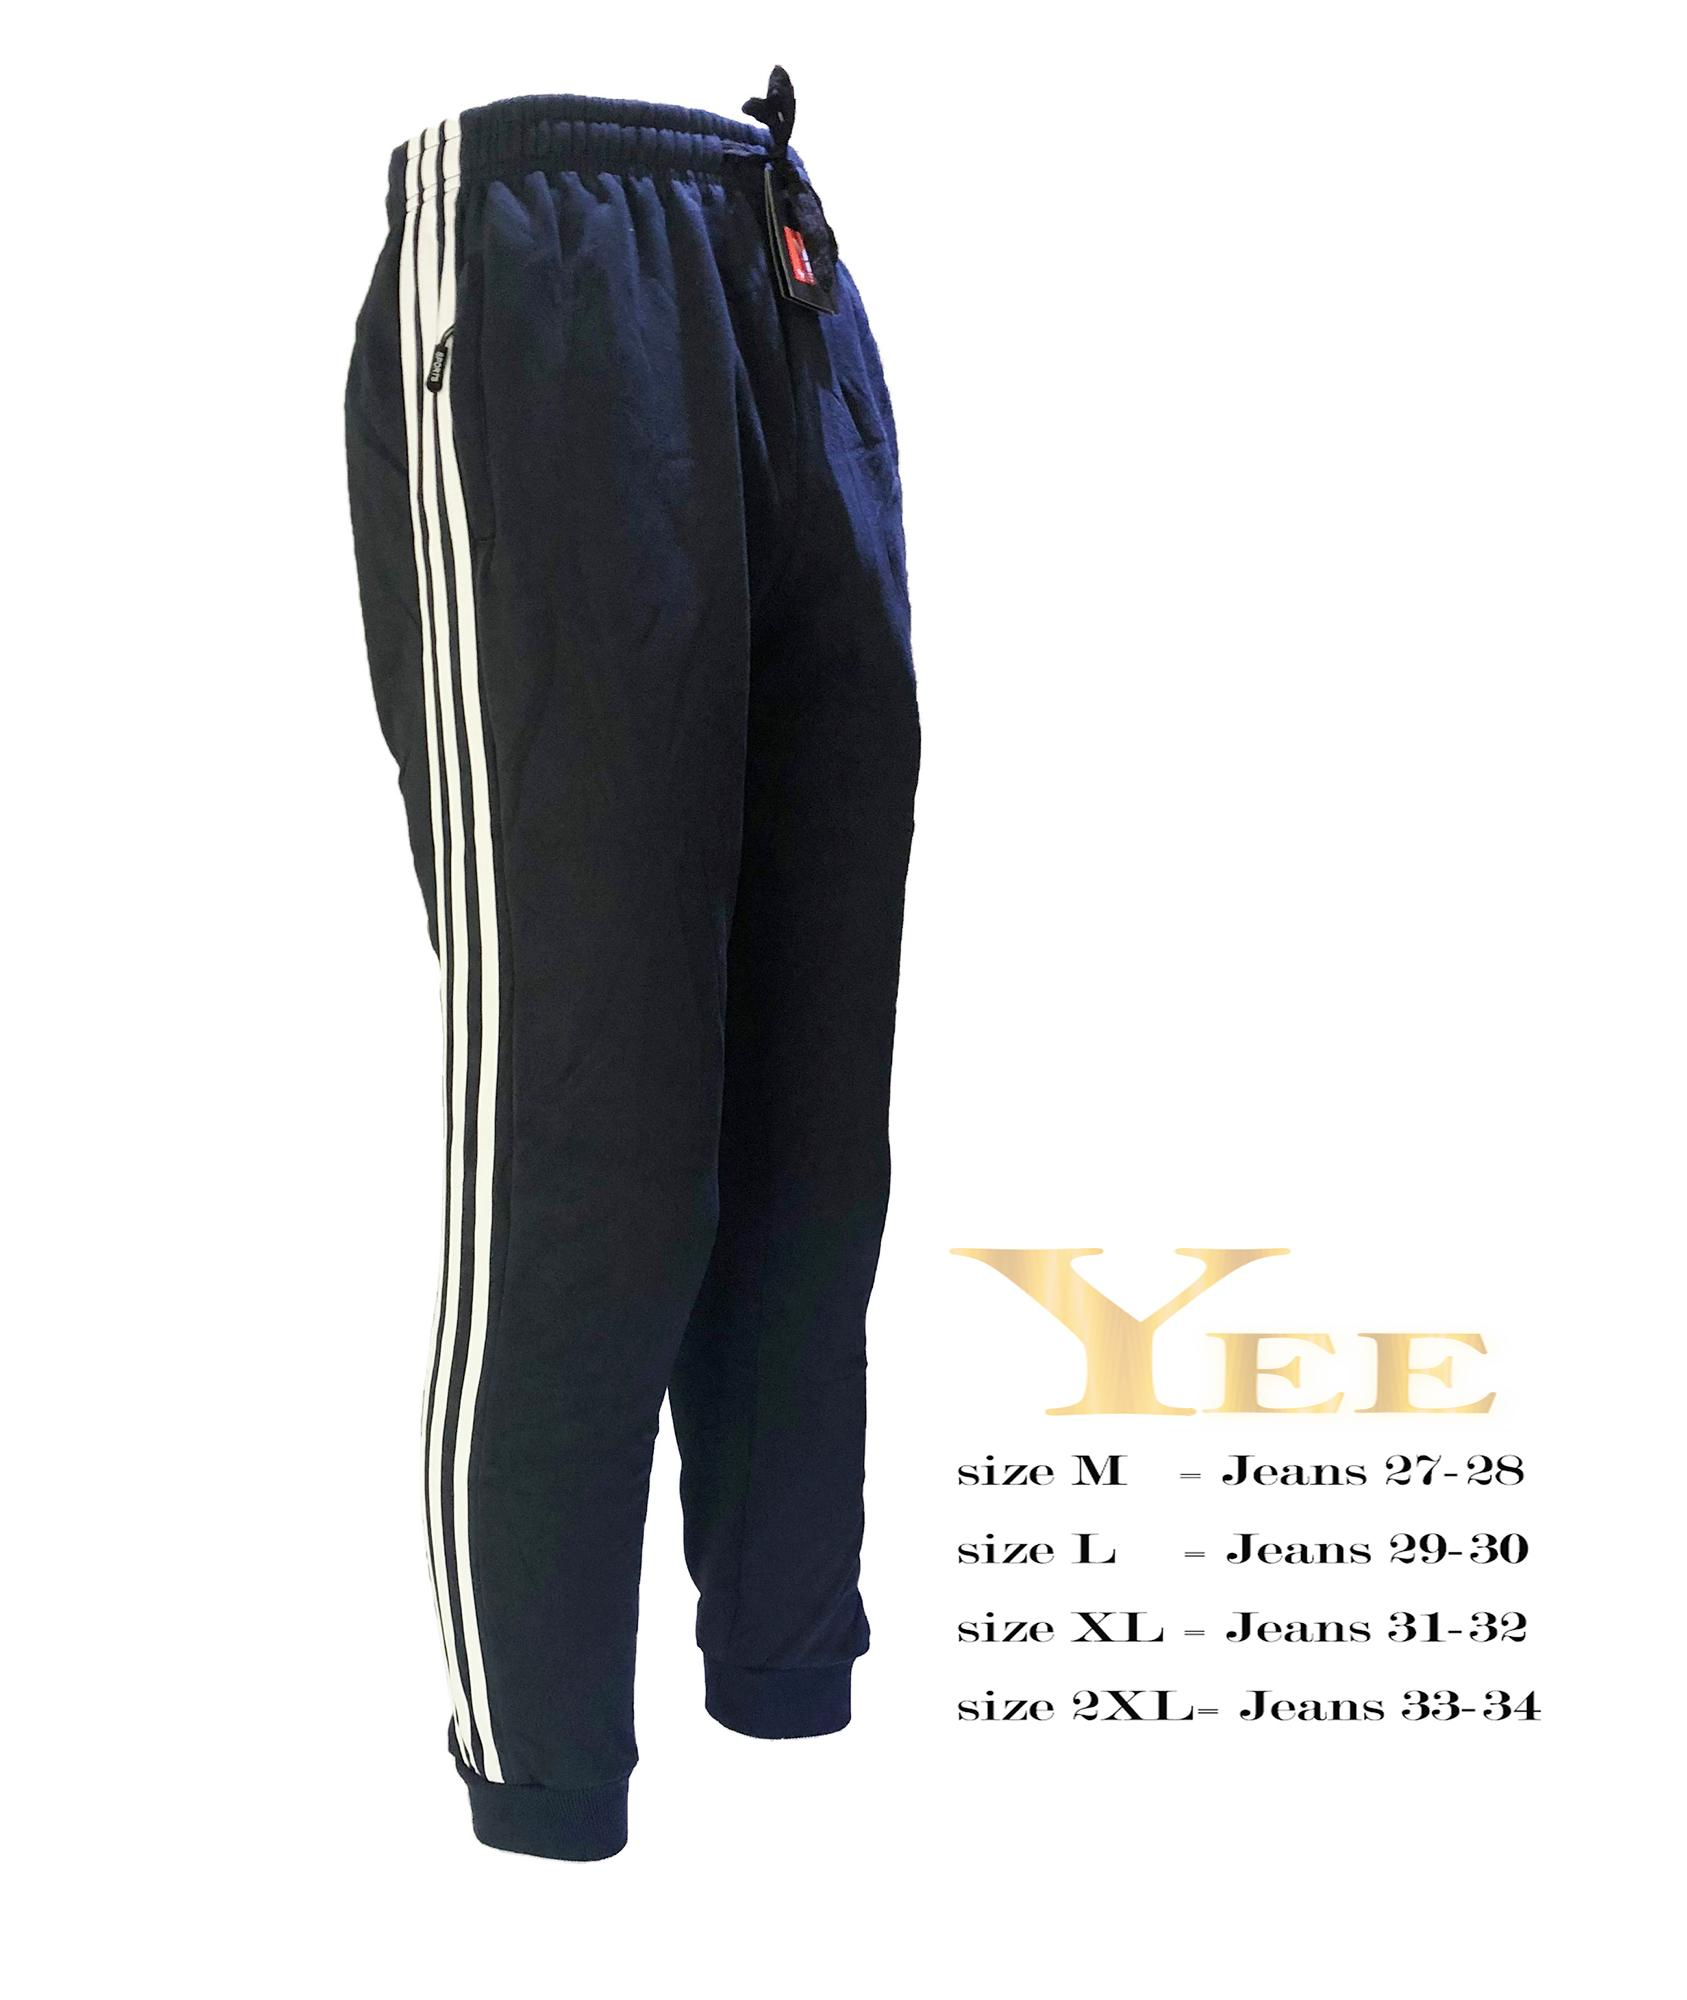 ae8827e7328f Sweatpants for Men for sale - Joggers for Men online brands